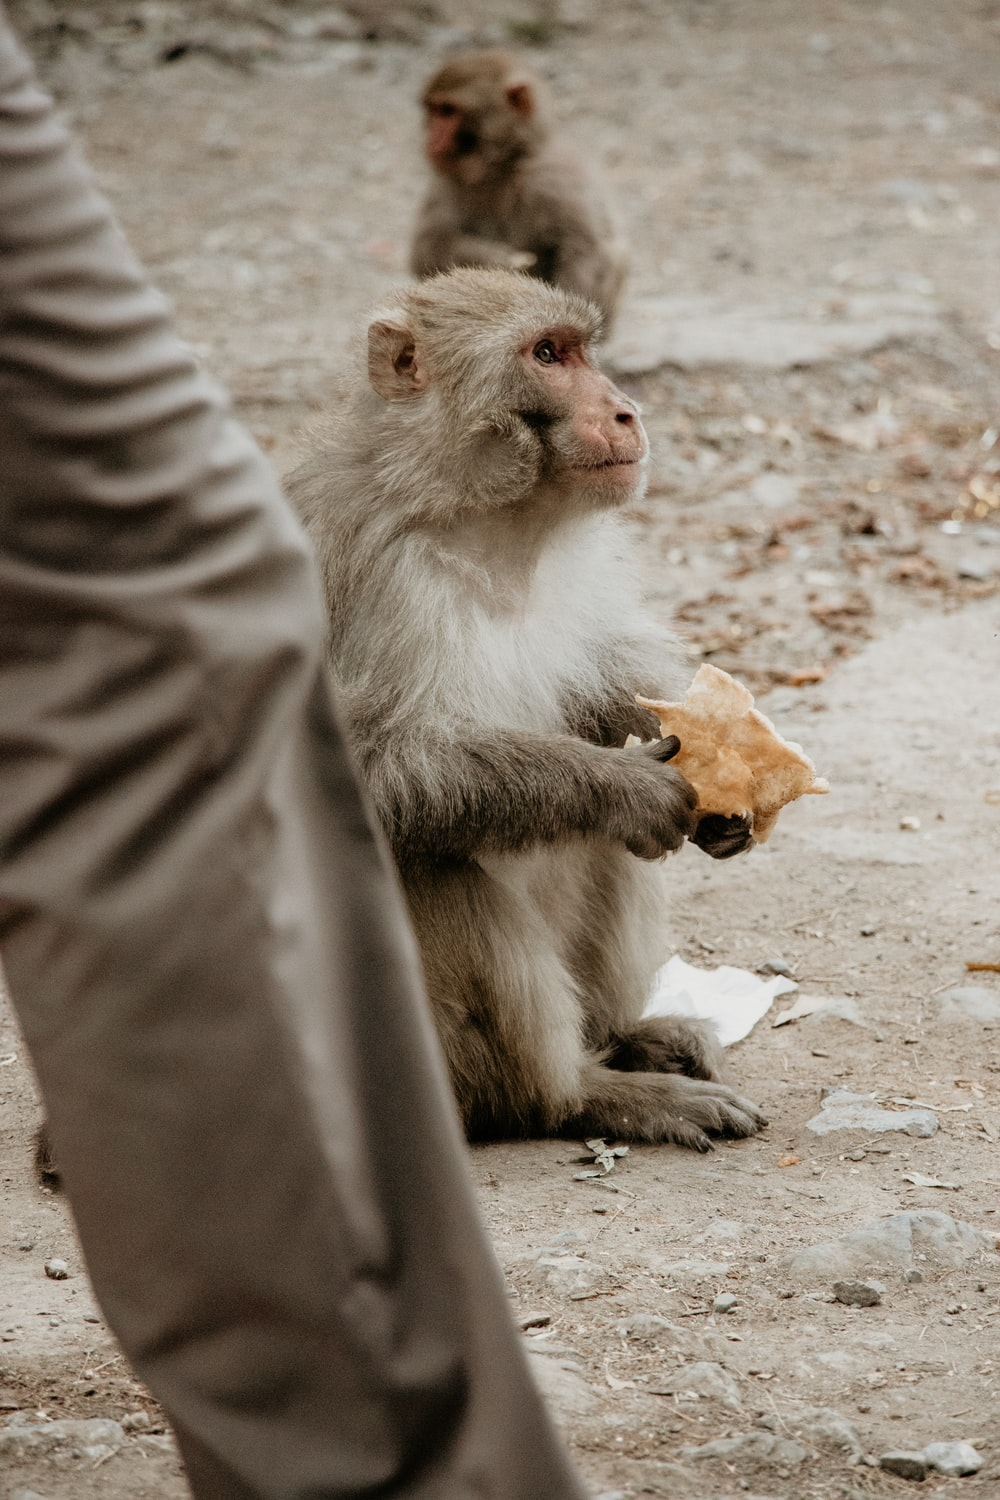 two monkeys sitting on the ground holding food